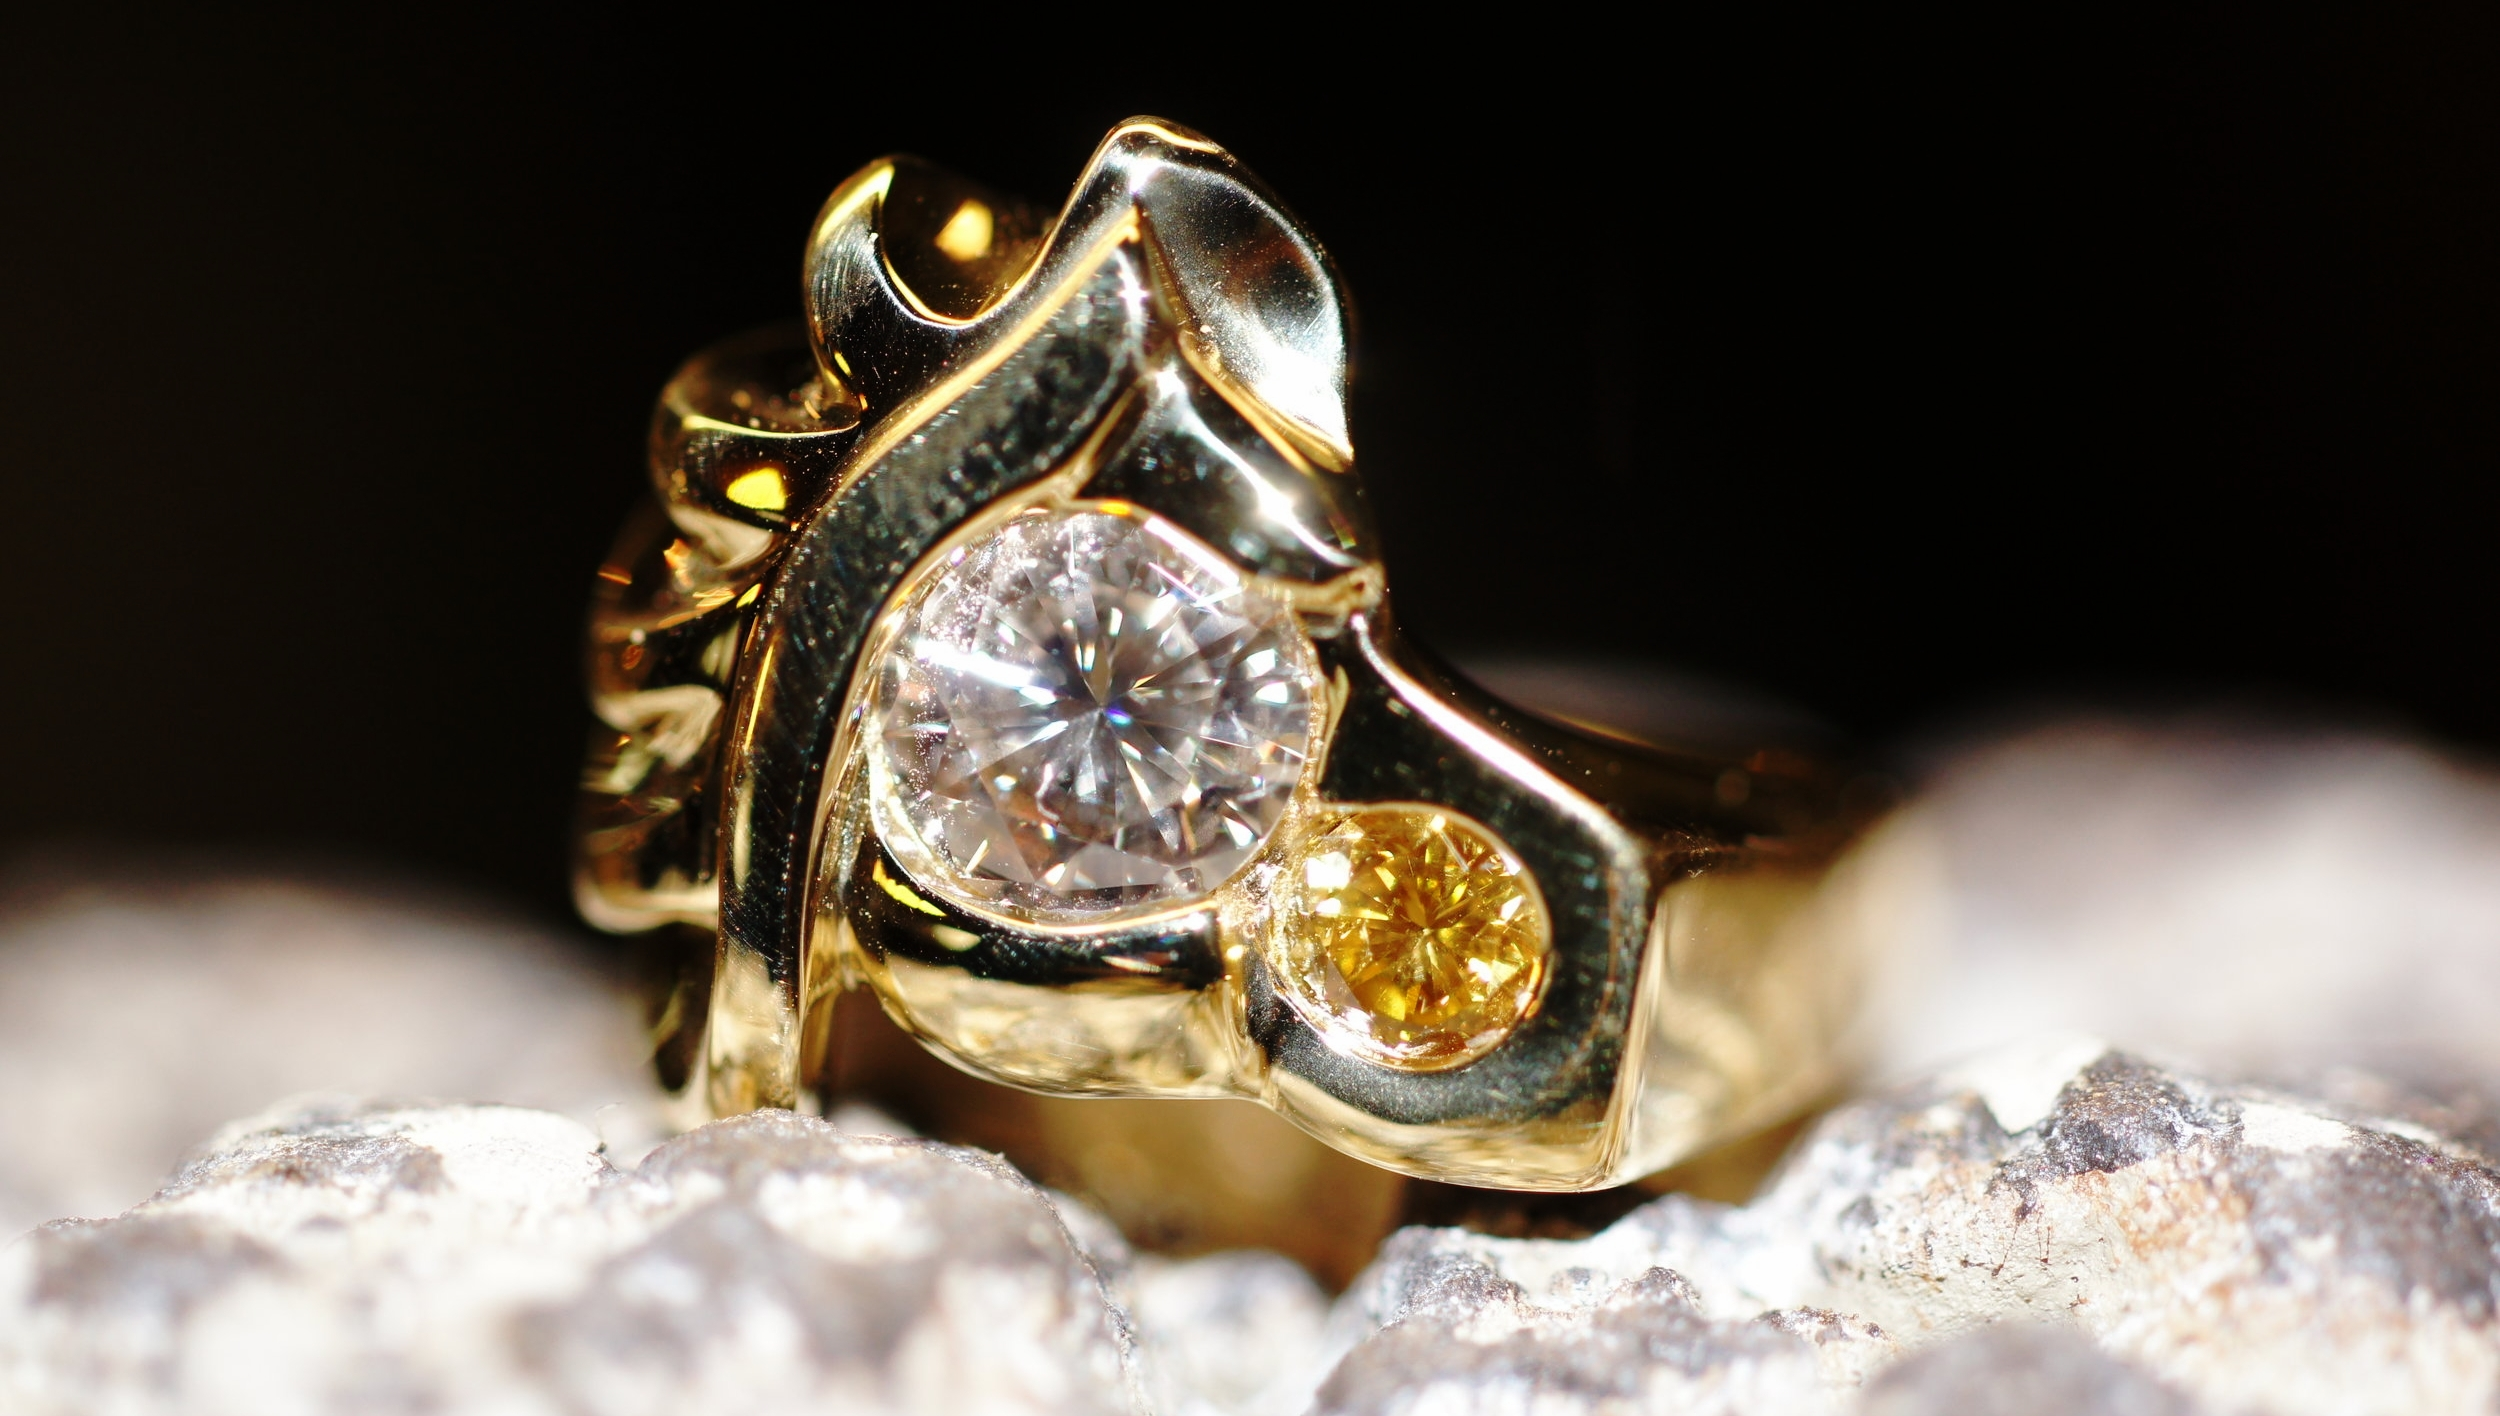 Stallion Fire - It's Clear grace wants to create spiritually Meaningful jewelry For People...